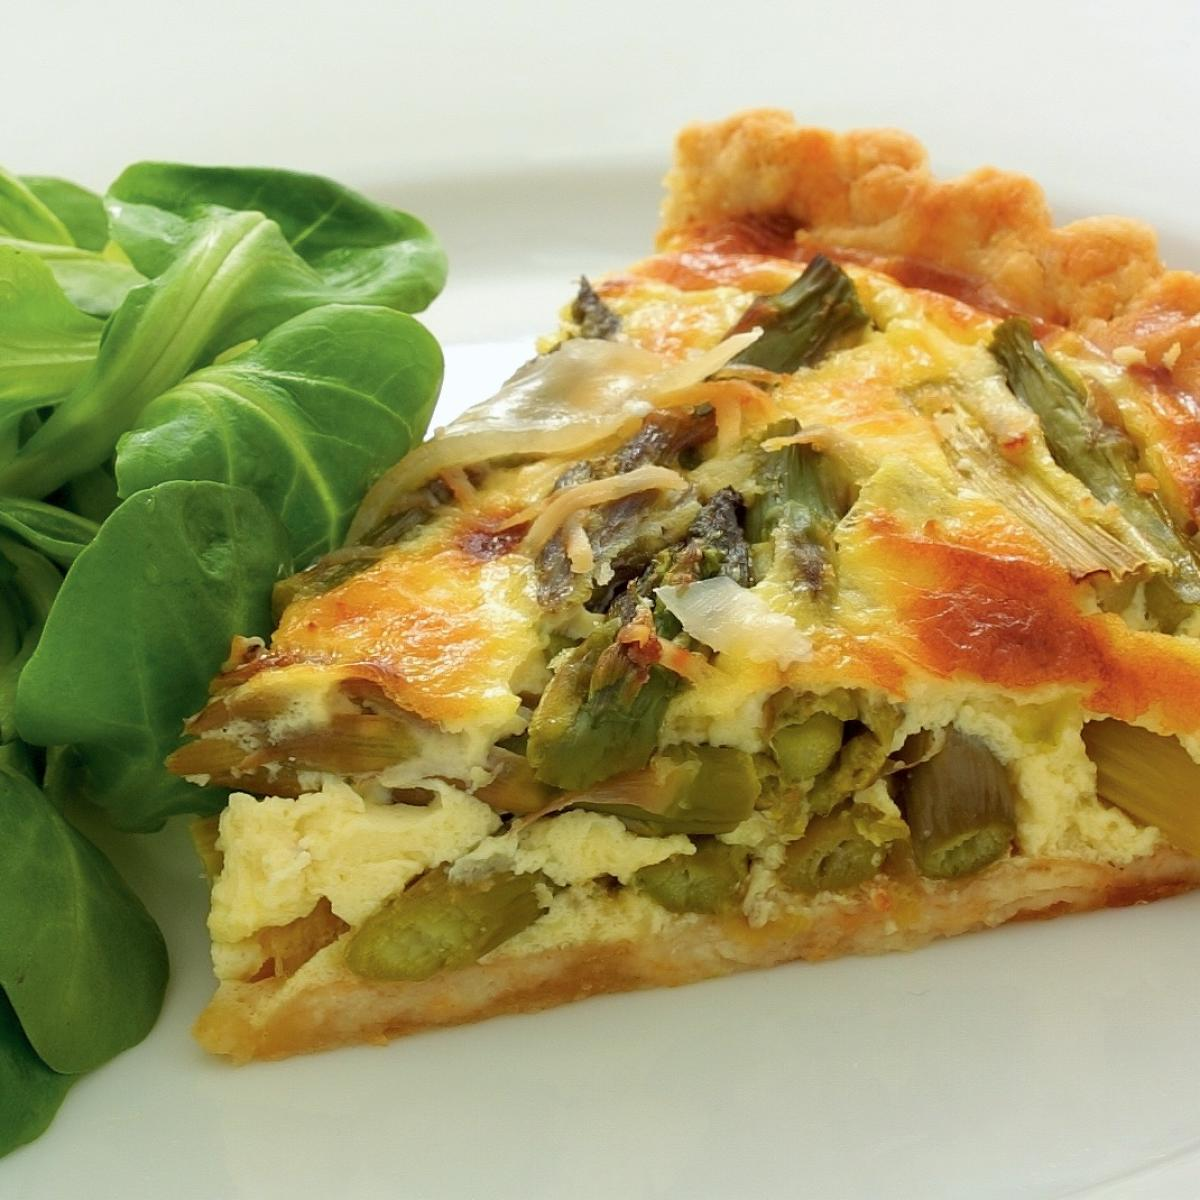 A picture of Delia's Asparagus and Cheese Tart recipe